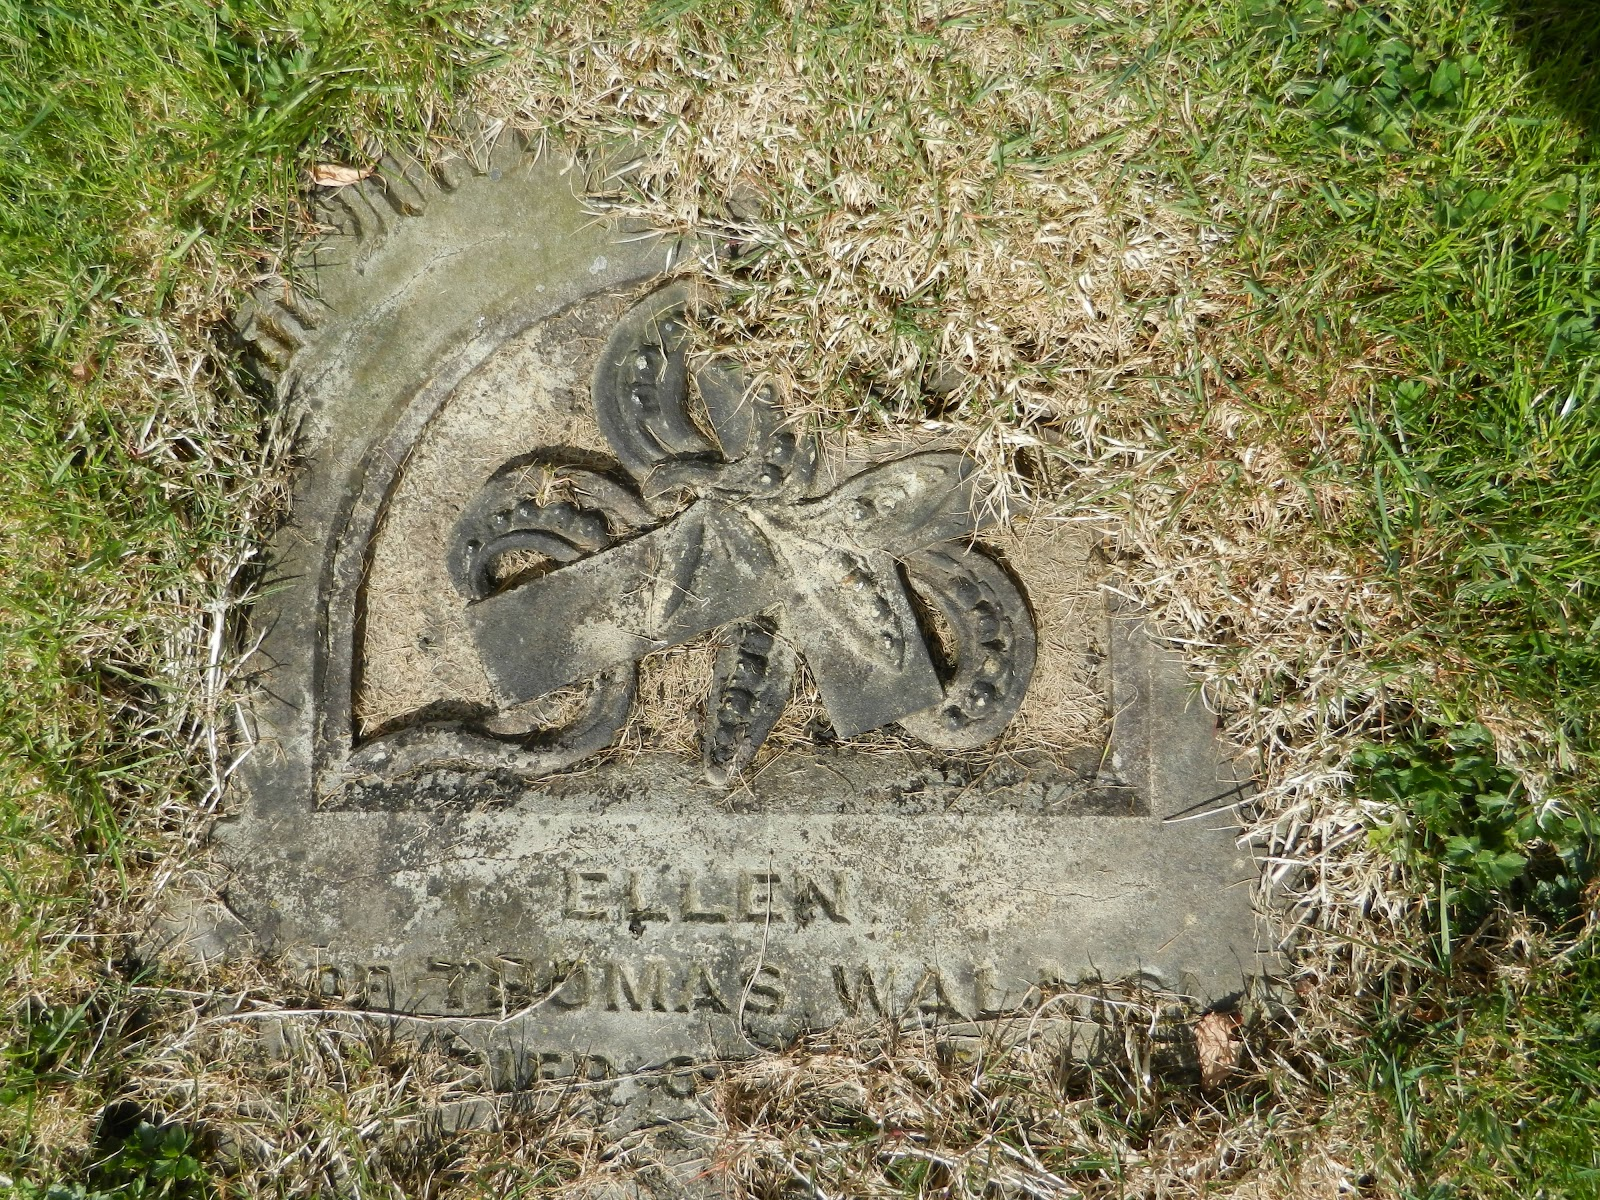 One of the overgrown headstones